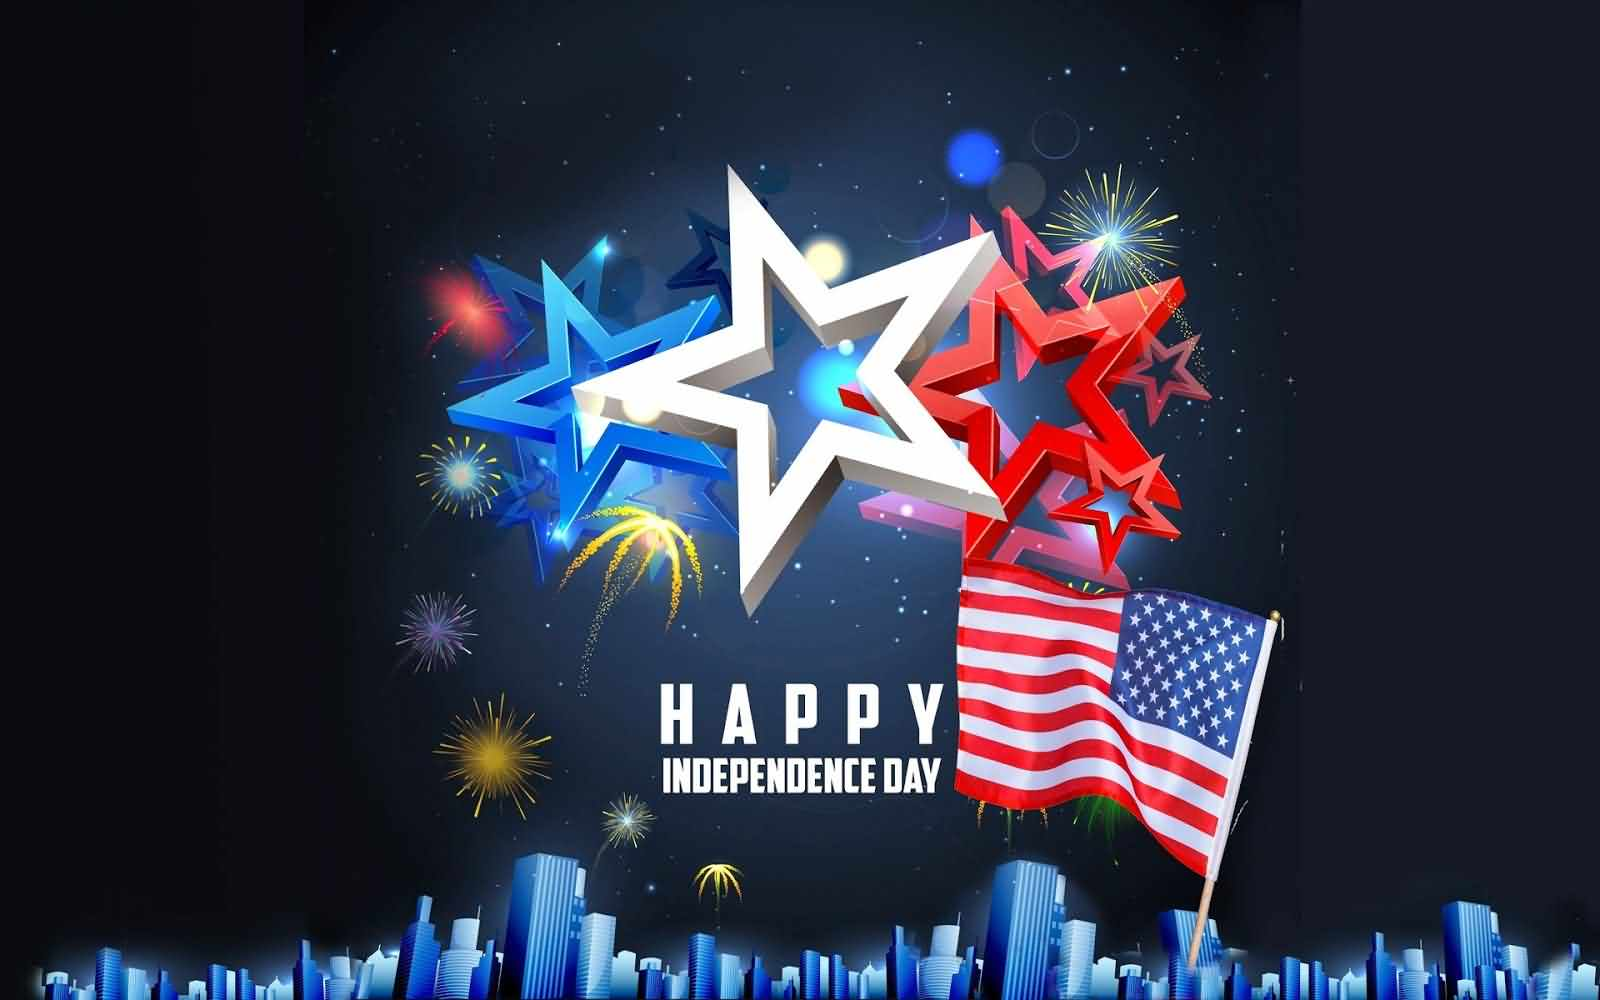 I Love My America Happy Independence Day Wishes Message 4th Of July Greetings Message Image